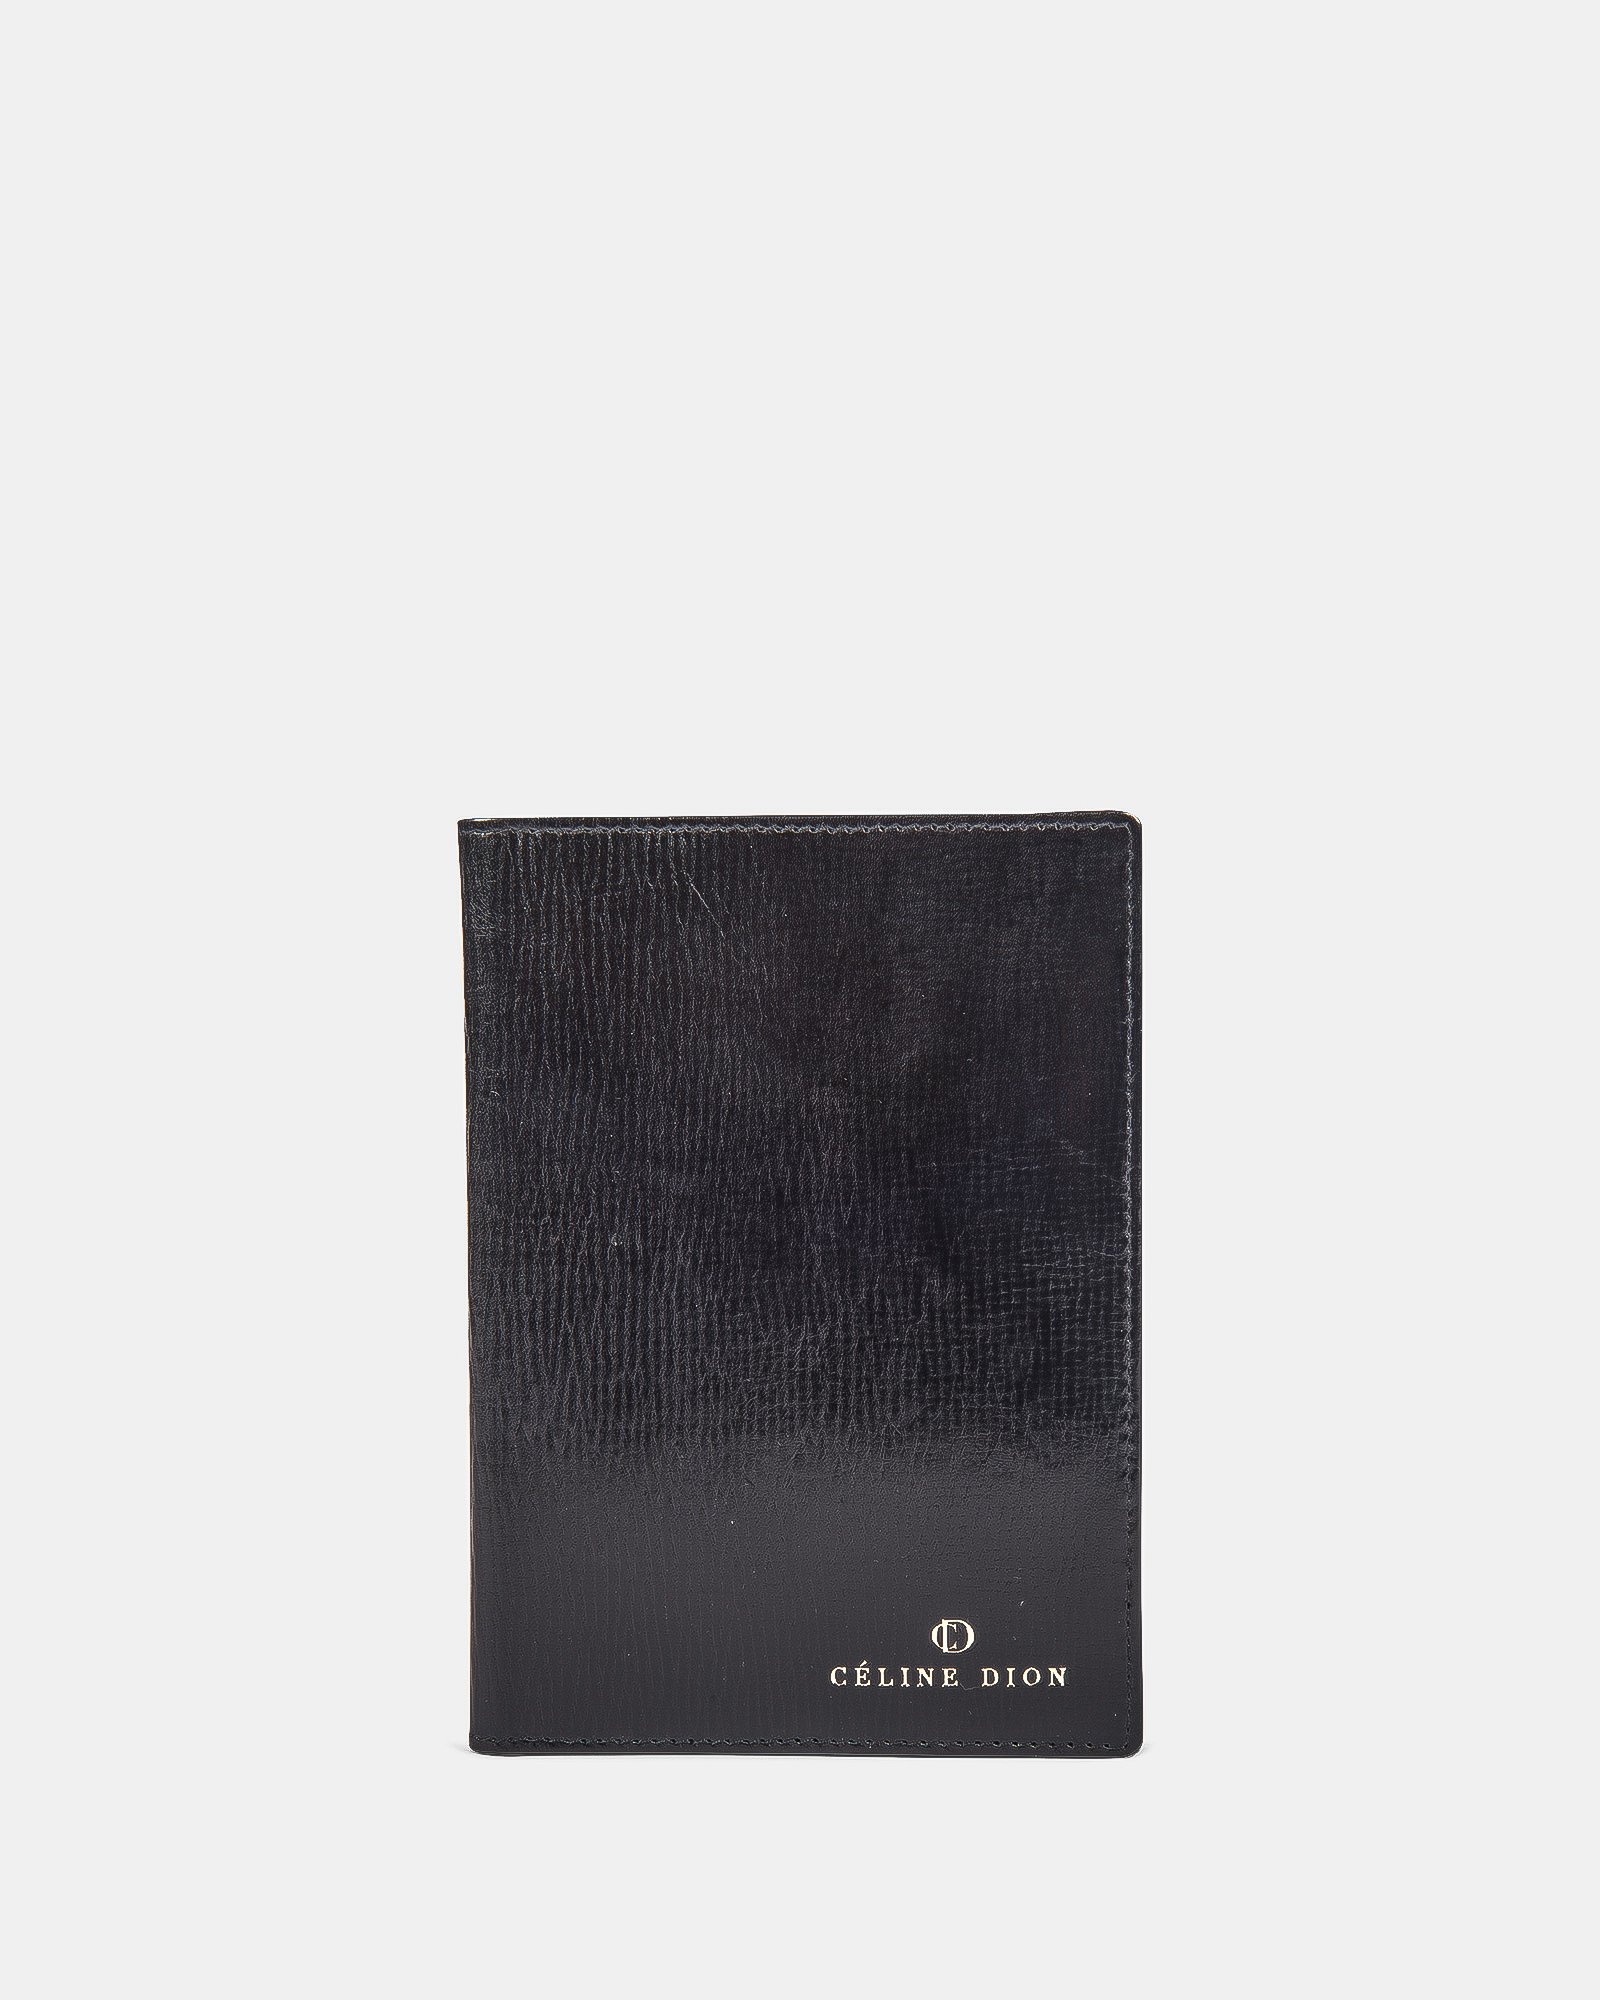 CAVATINA - Passport case - Céline Dion - Zoom